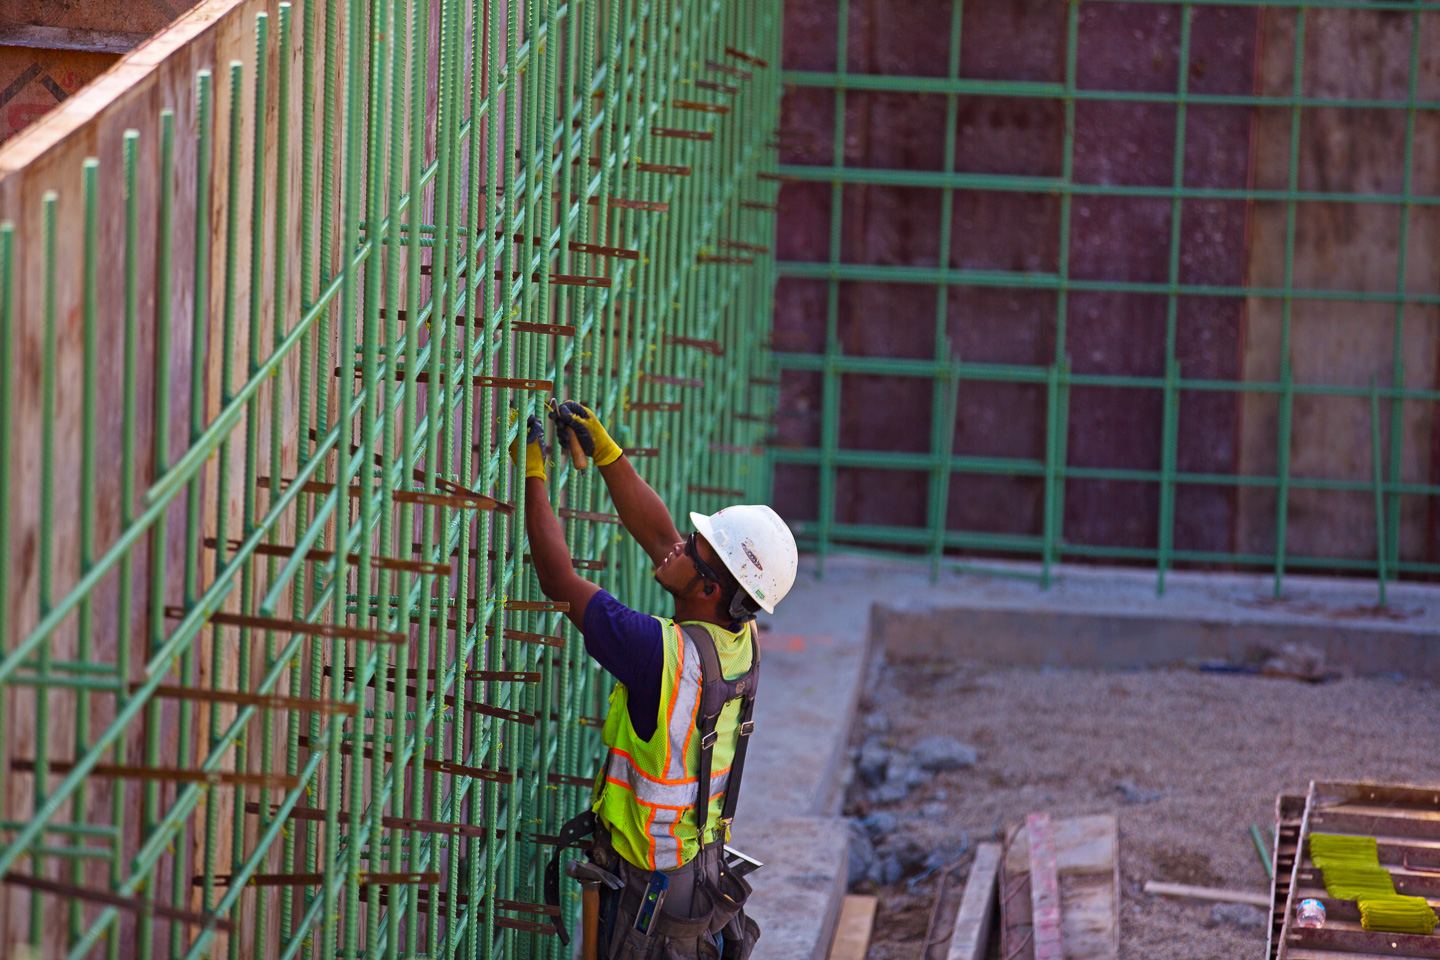 Construction worker securing rebar to steel clips